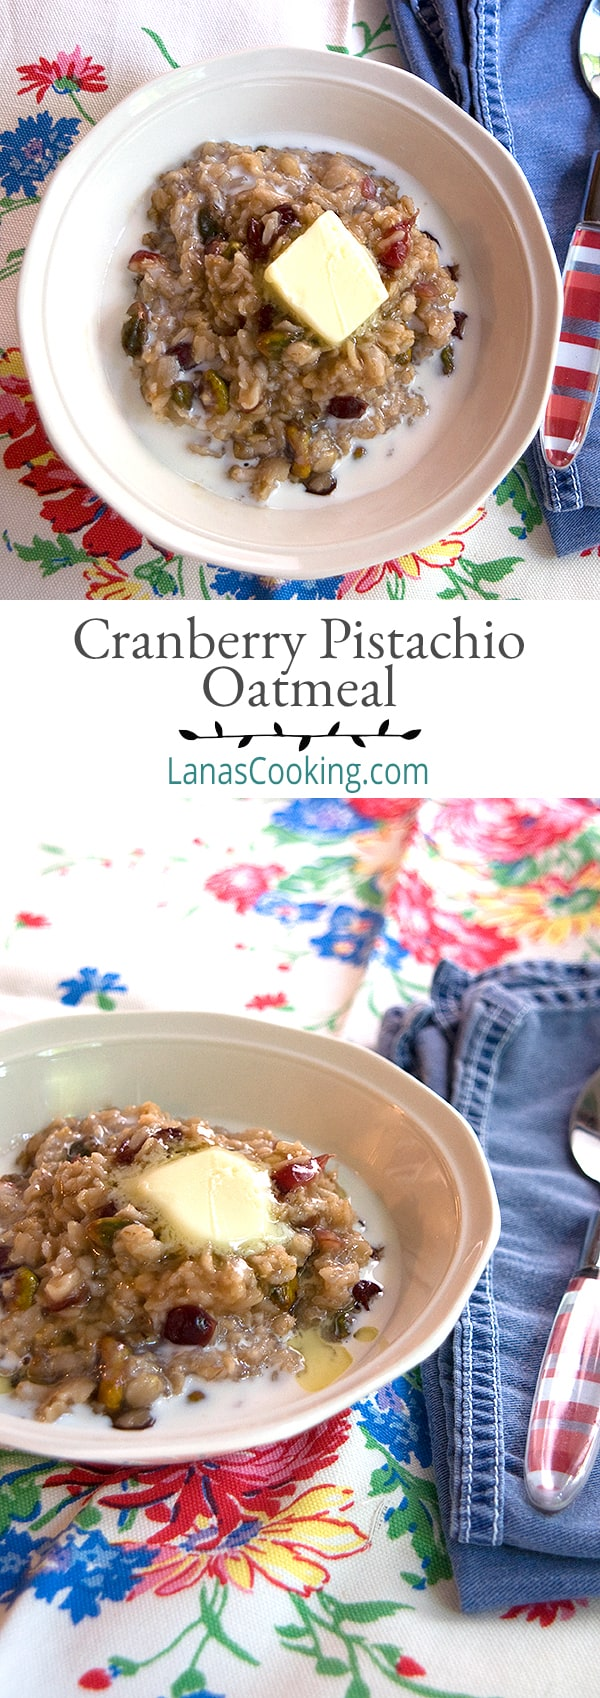 This Cranberry Pistachio Oatmeal is just a little something different for your mornings. Liven up that daily bowl of oatmeal with these delicious additions. From @NevrEnoughThyme https://www.lanascooking.com/cranberry-pistachio-oatmeal/